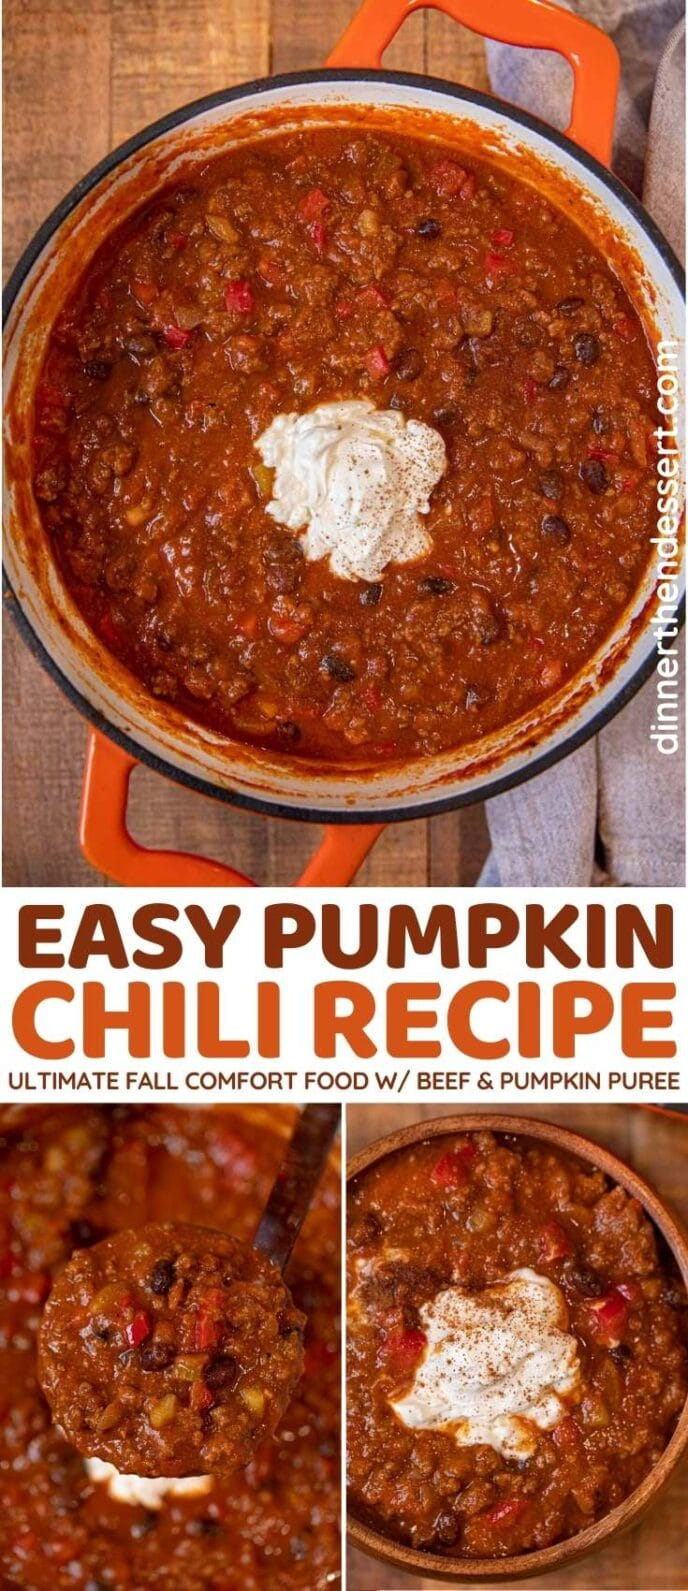 Pumpkin Chili collage